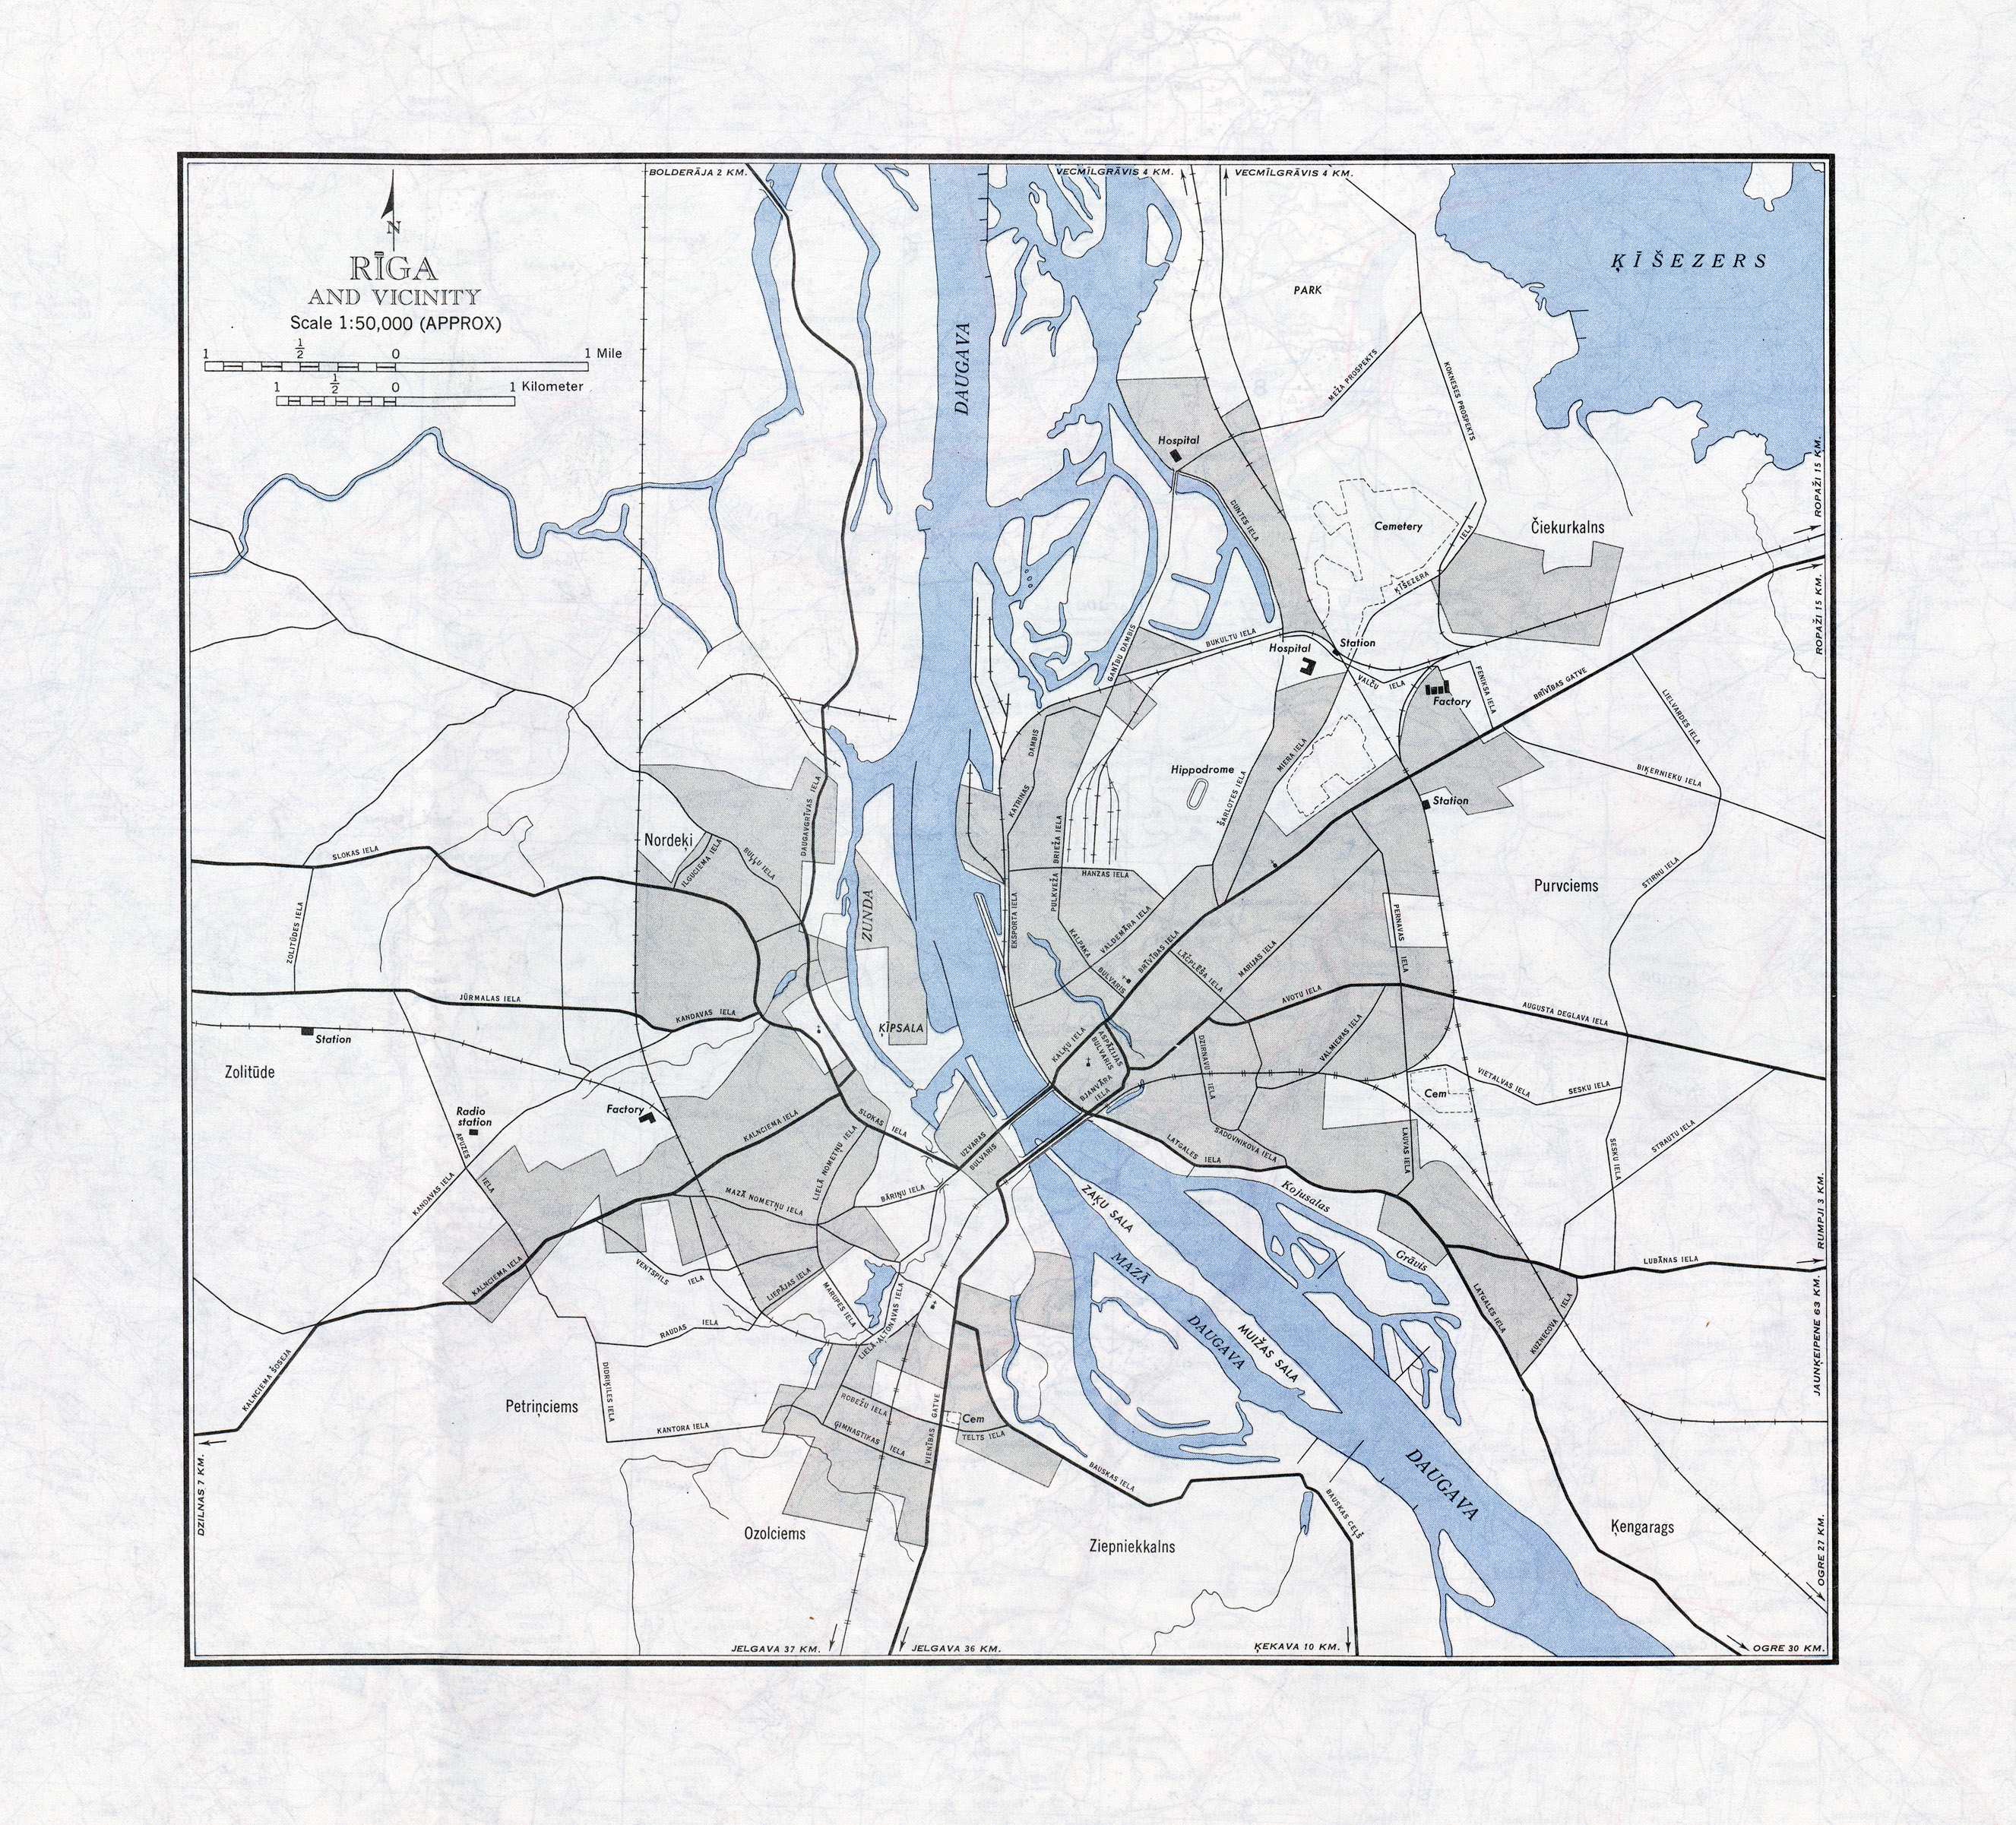 Large map of Riga and vicinity Riga and vicinity large map